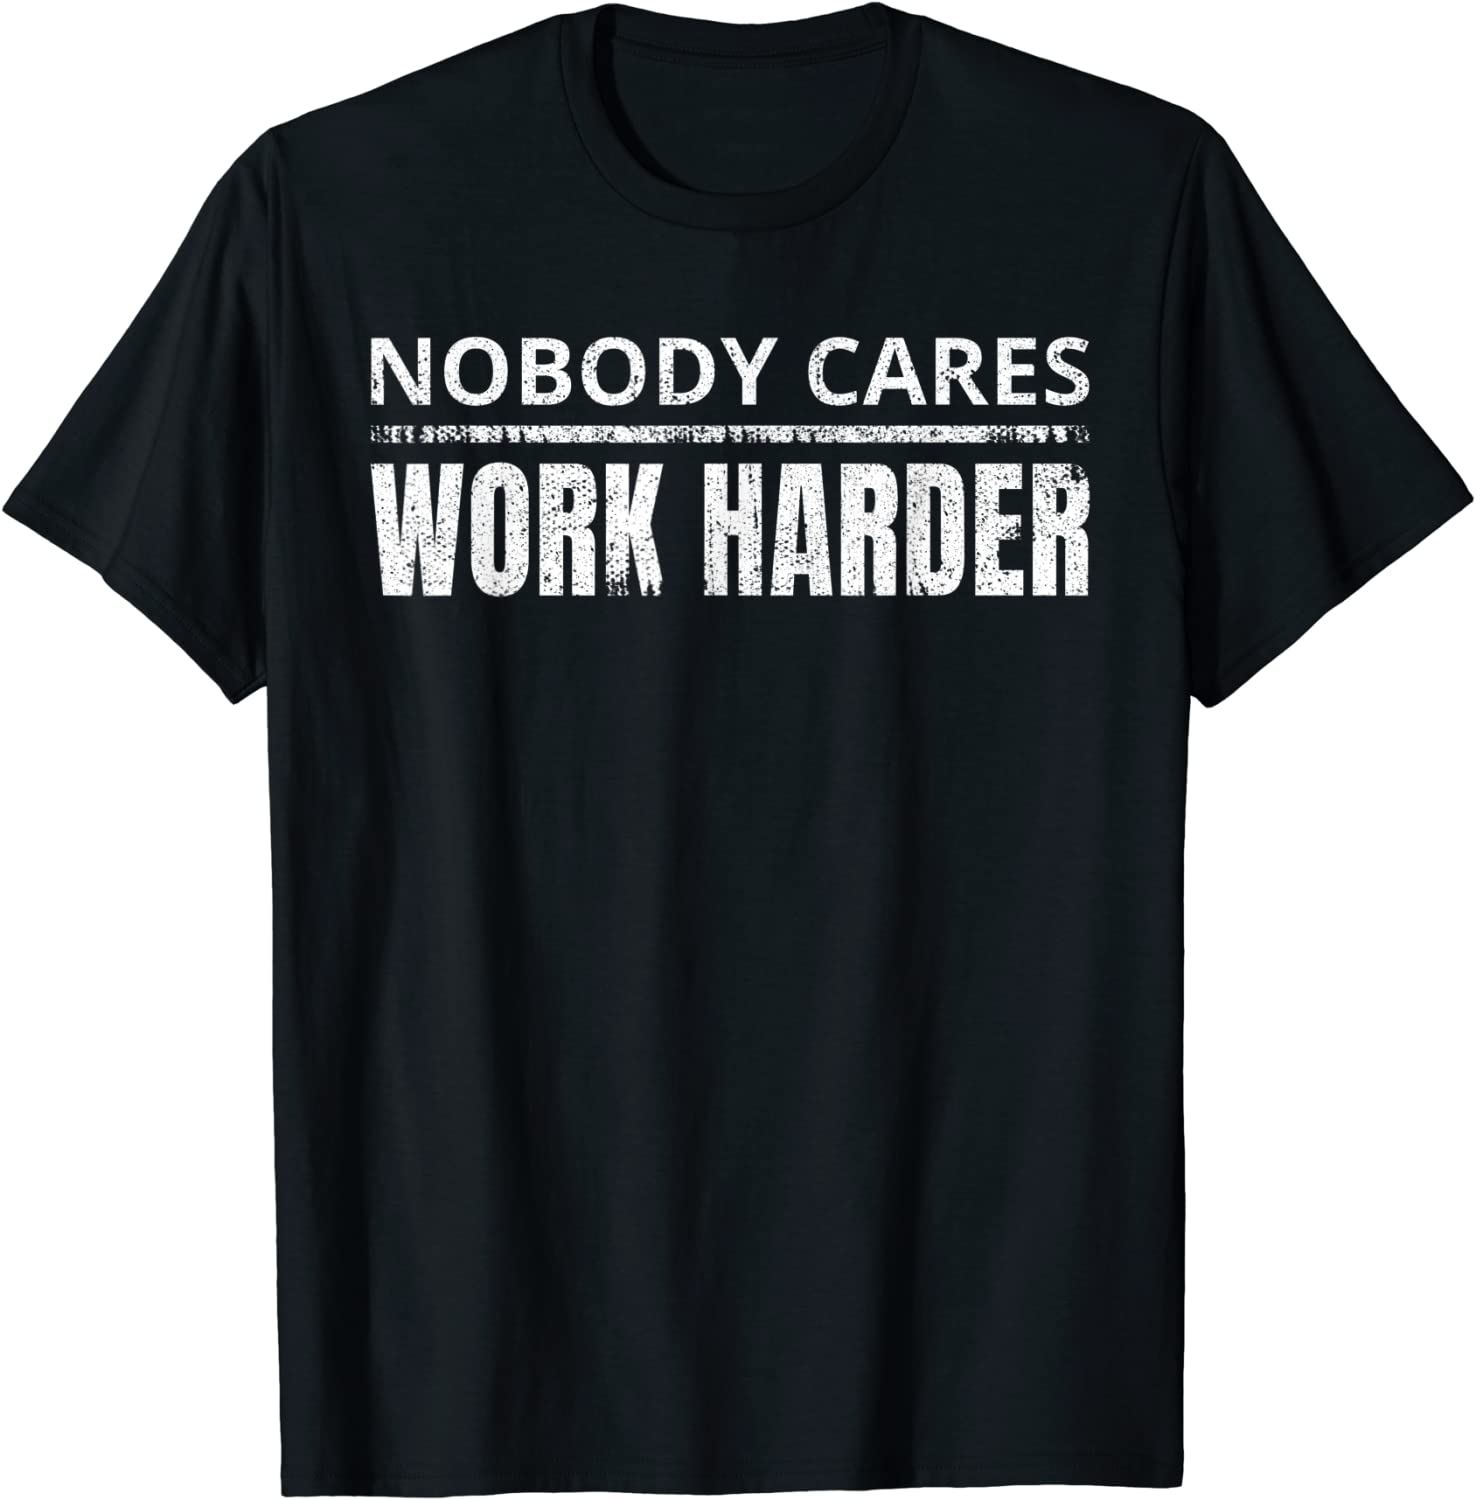 Nobody Cares Outstanding Work Harder Funny Gym T-Shirt Fitness Max 69% OFF Workout